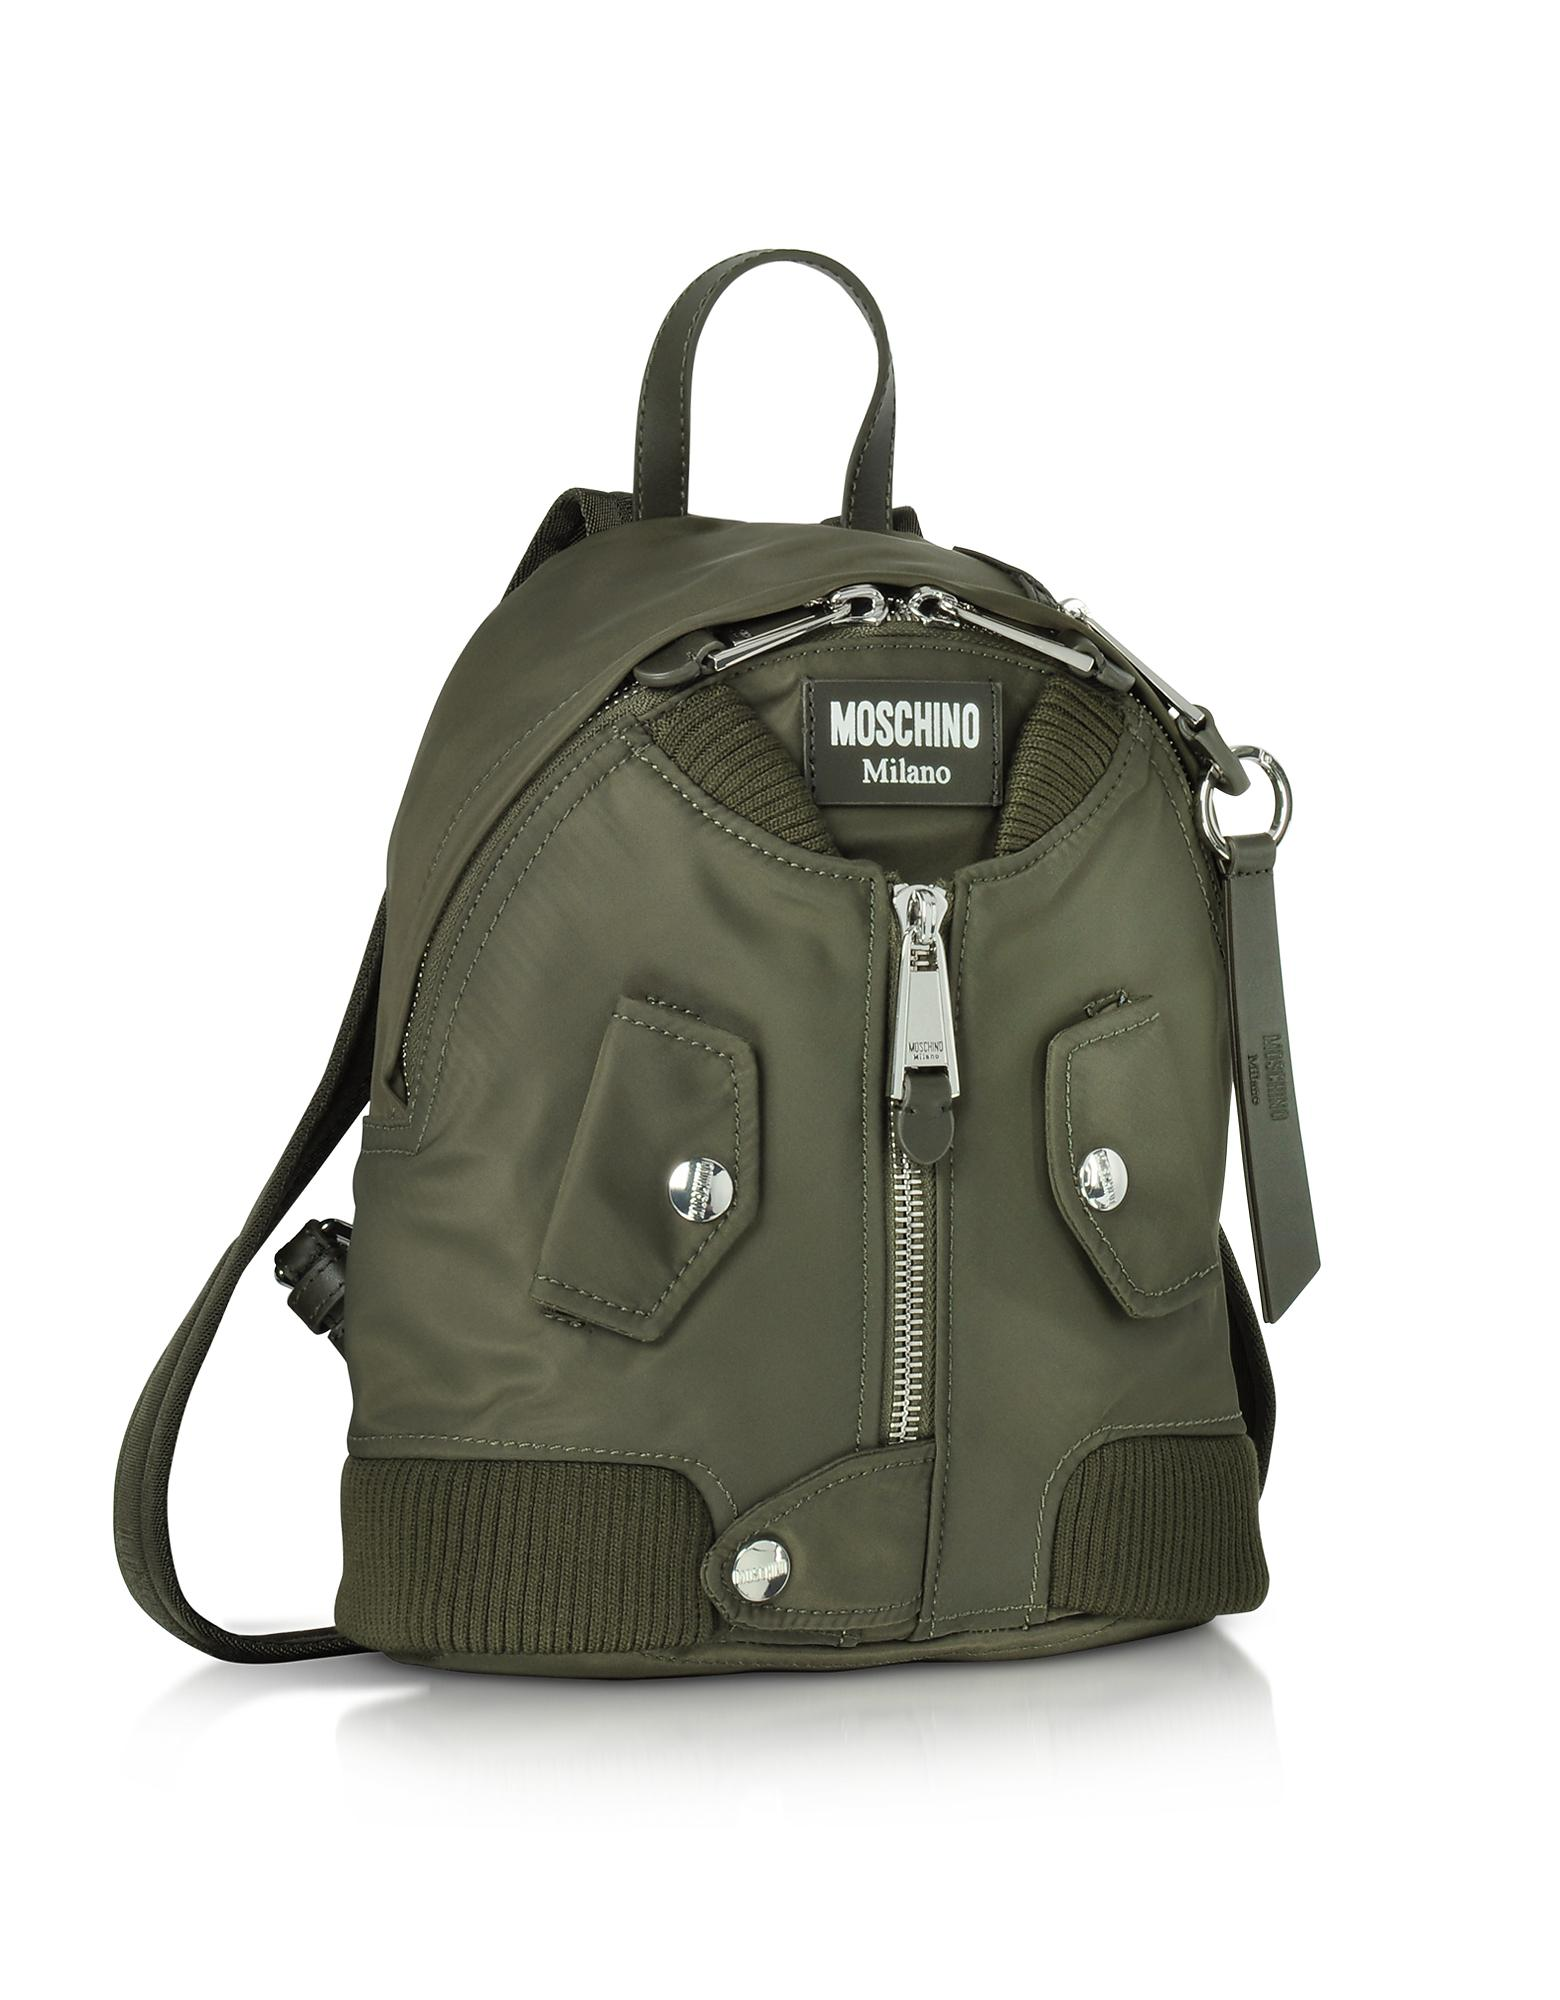 99a8a284263a Lyst - Moschino Khaki Nylon Bomber Jacket Backpack